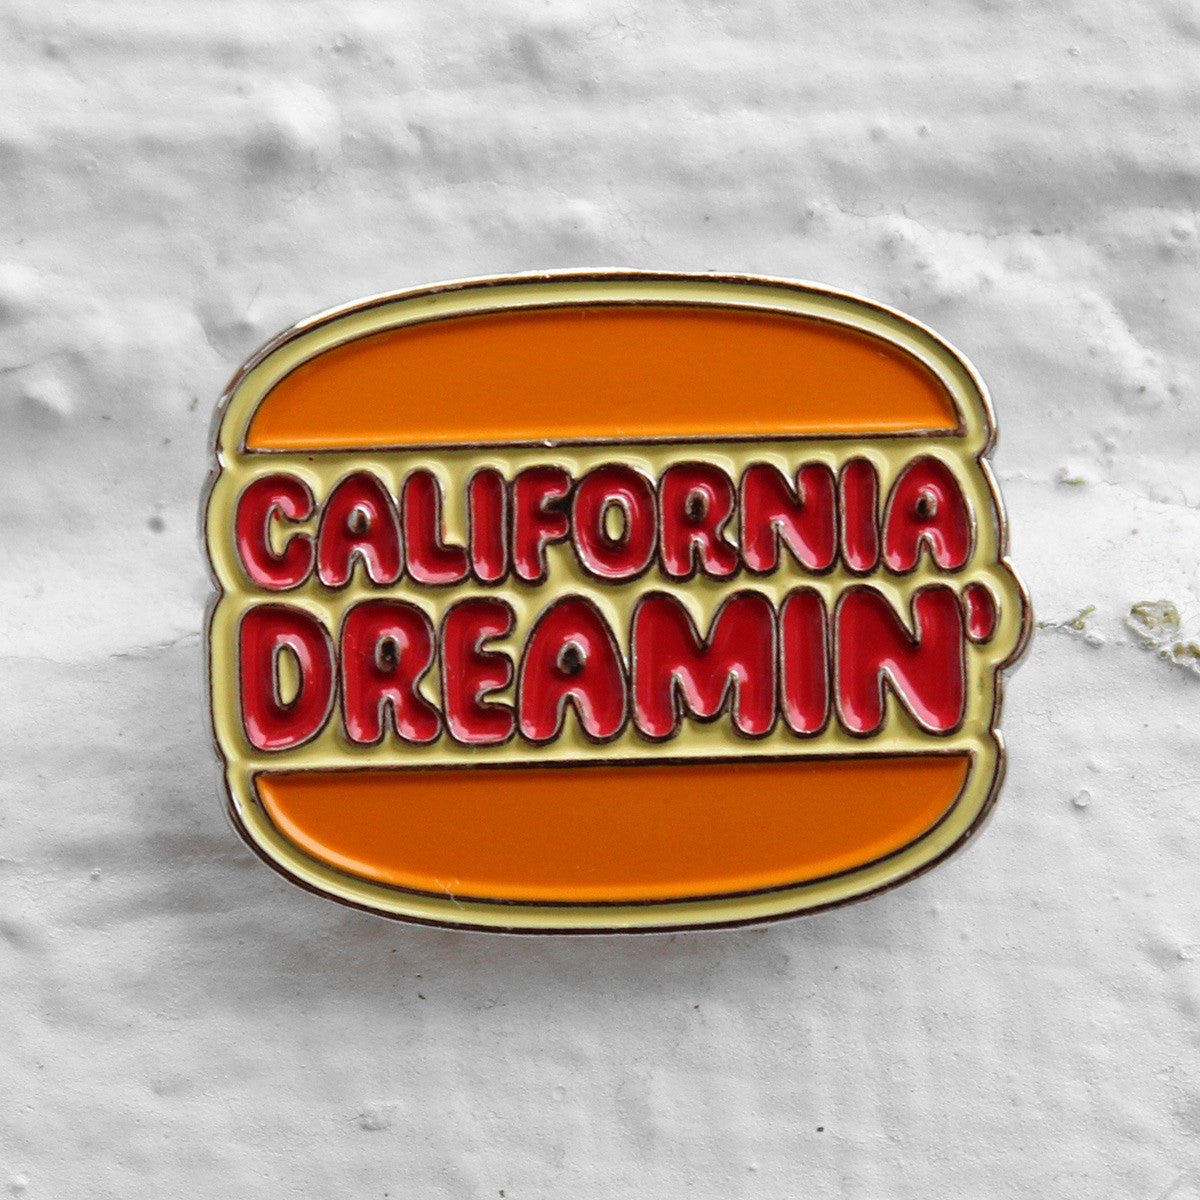 Valley Cruise Press California Dreaming' Burger Pin Badge